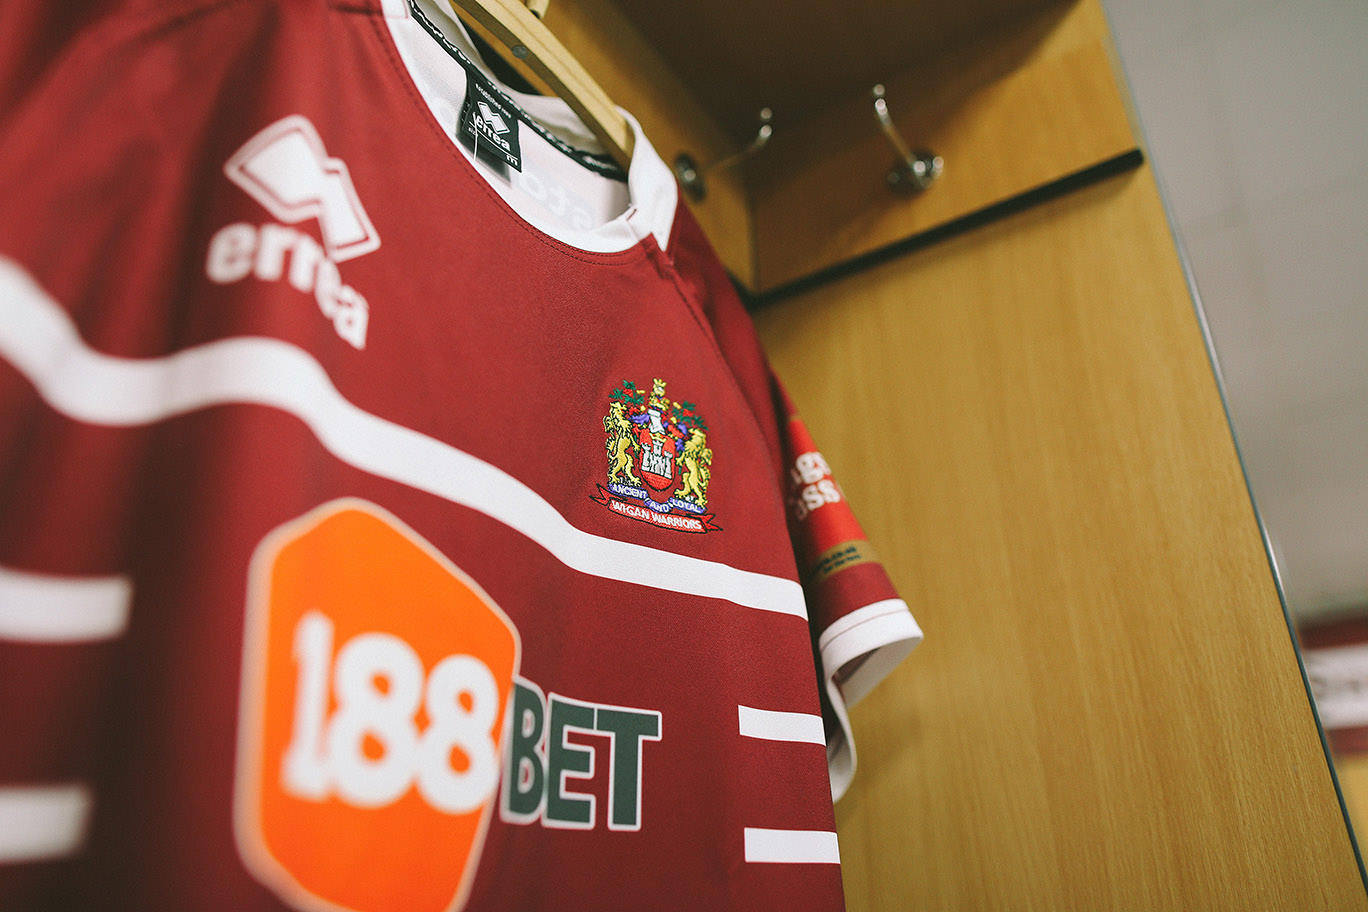 Wigan Warriors badge on the new shirt in the dressing room